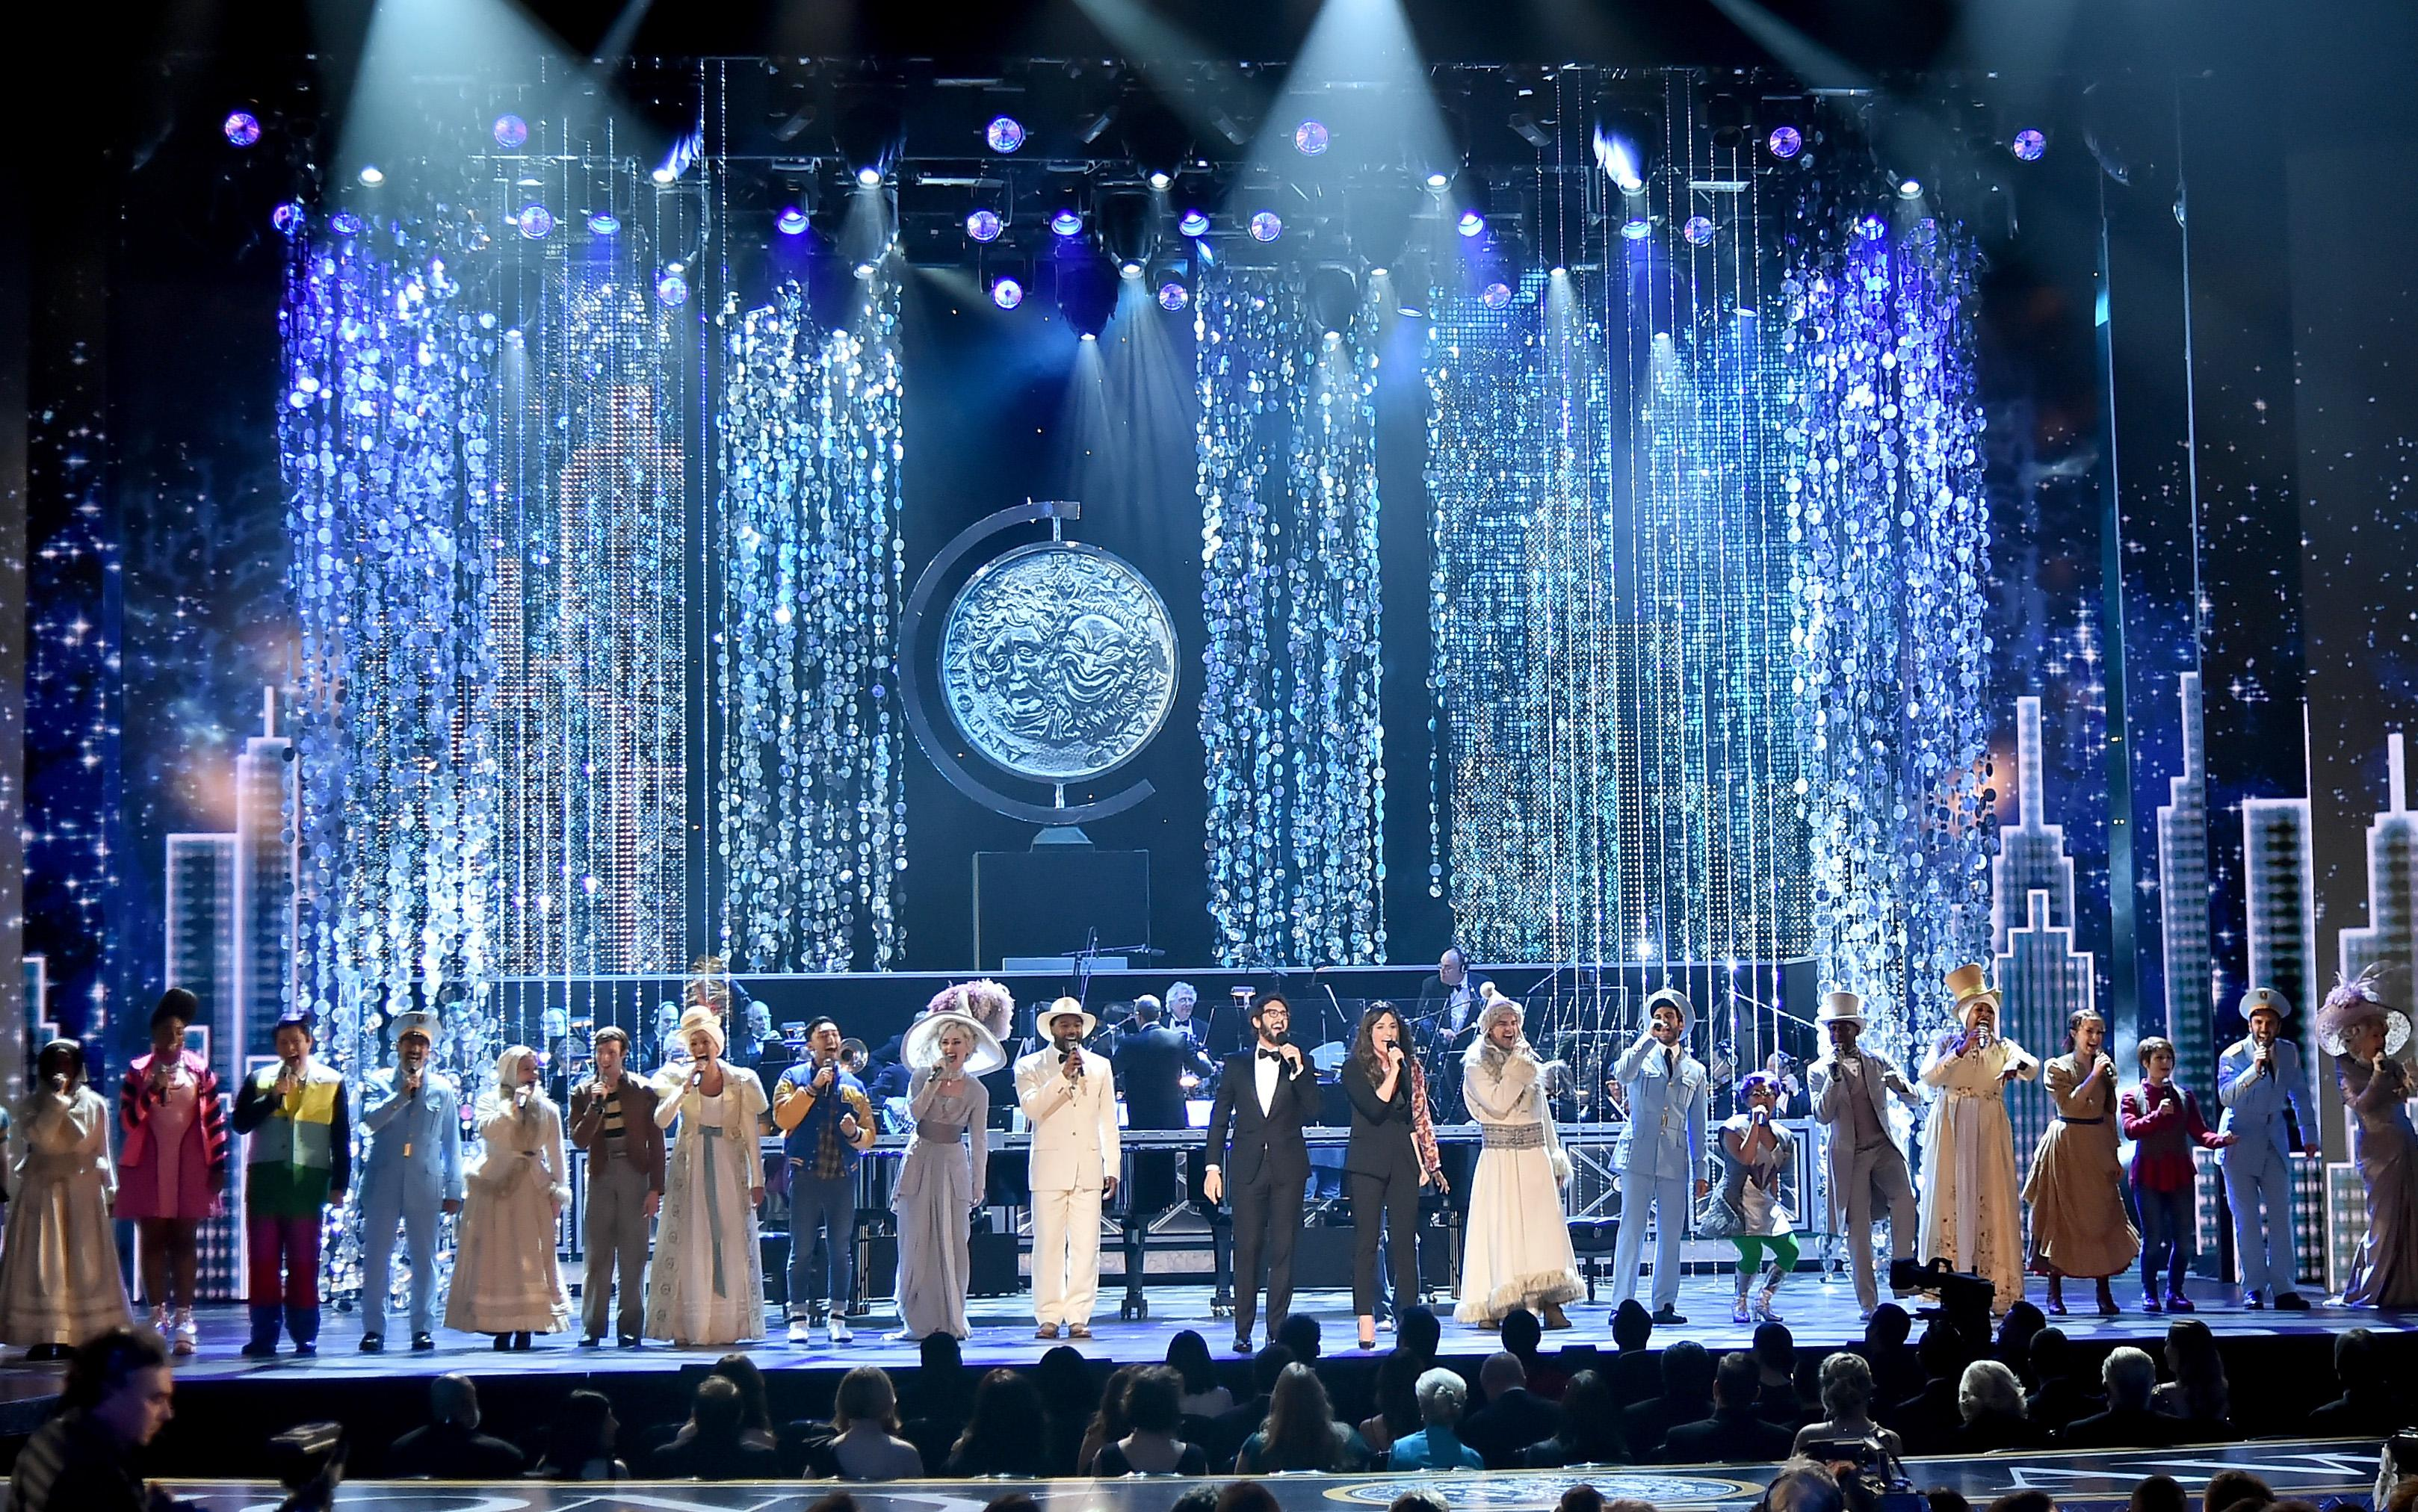 Tony Awards performances